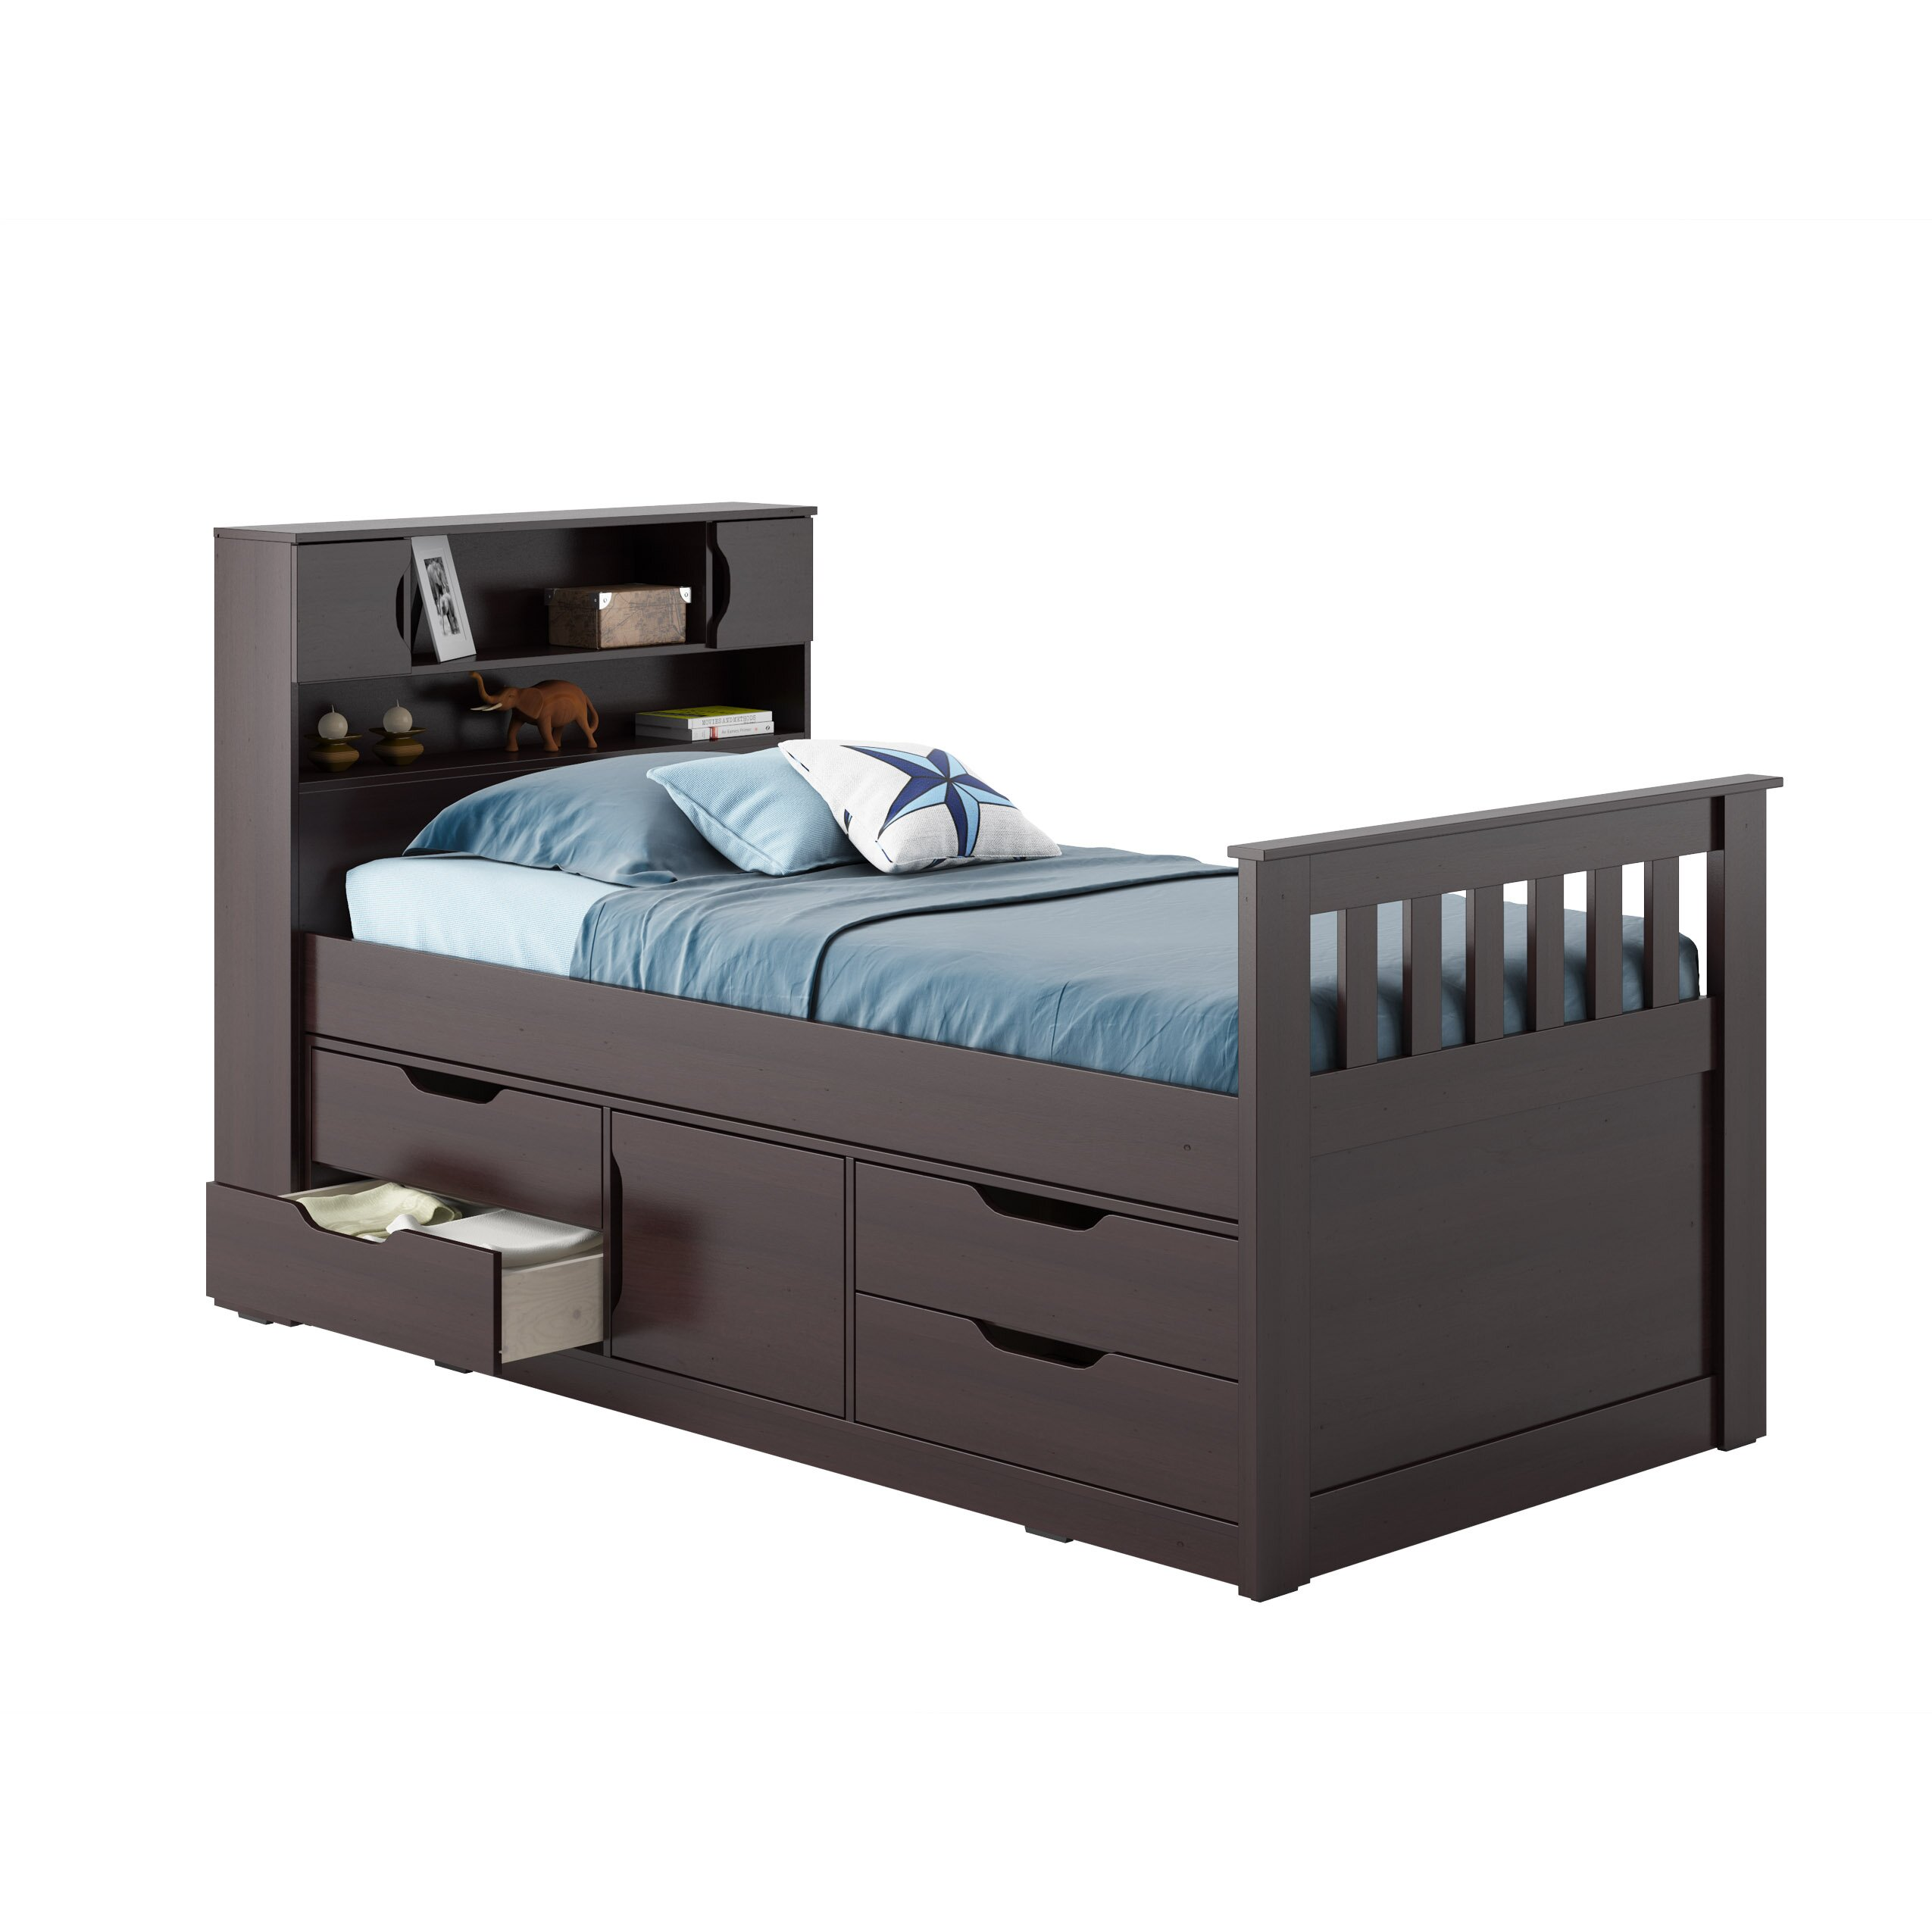 Corliving madison twin captain bed with storage reviews for Twin bed with storage